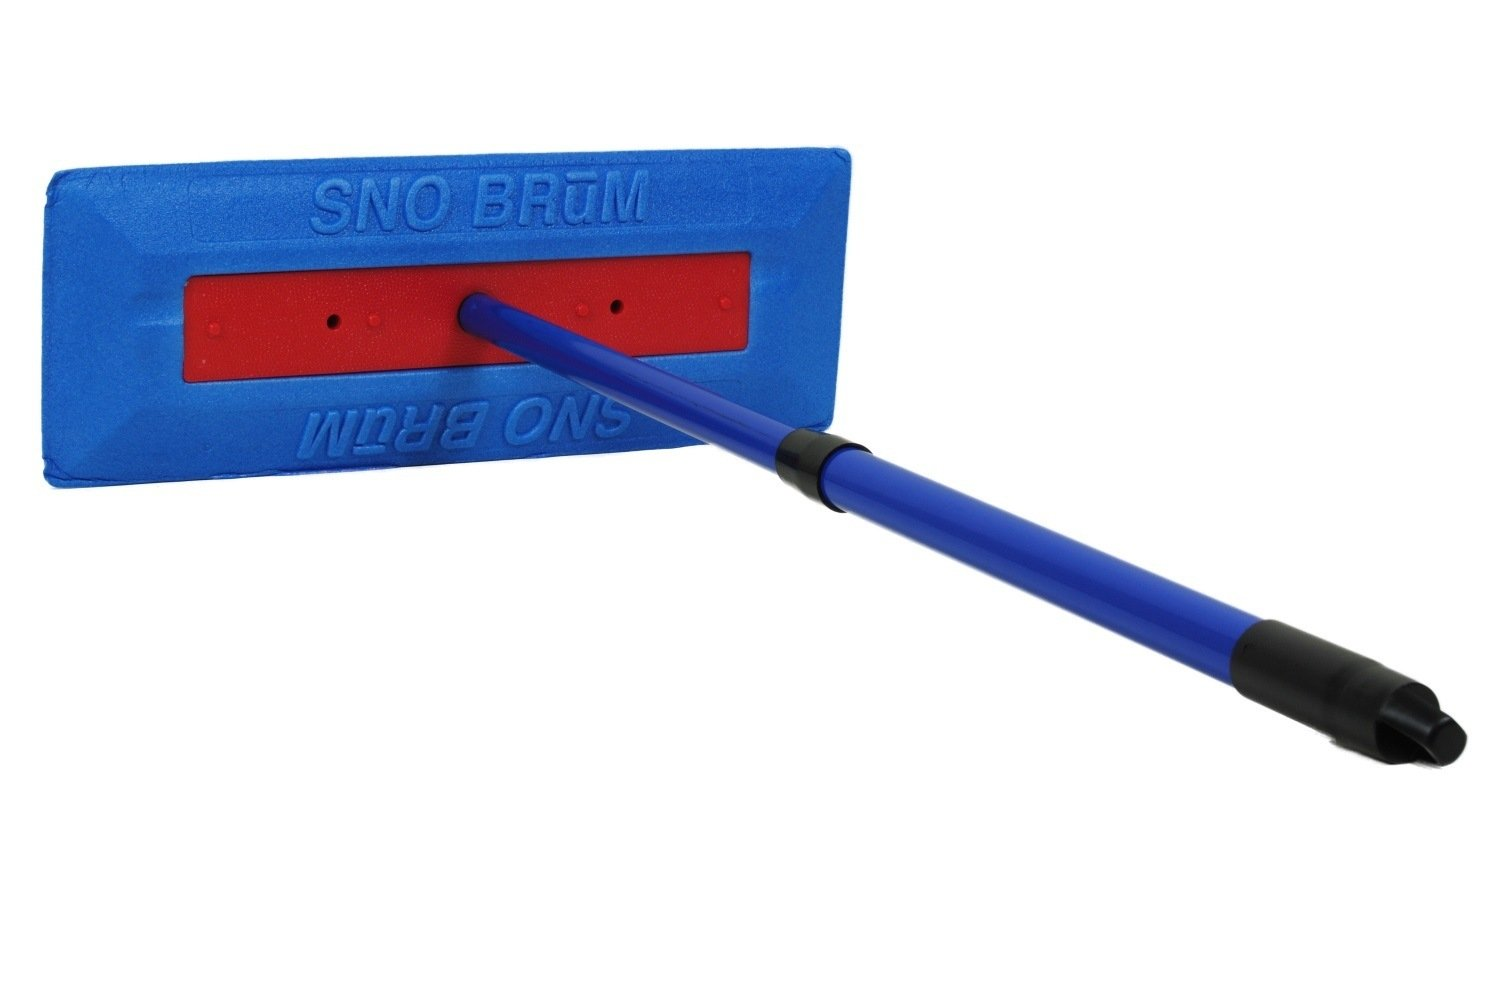 """Wet Snow from Your Car // SUV // Truck Without Scratching the Paint SnoBrum The Original Snow Remover Brush // Tool for Vehicles 47/"""" Extendable Telescoping Handle Push-Broom Design Remove Heavy"""